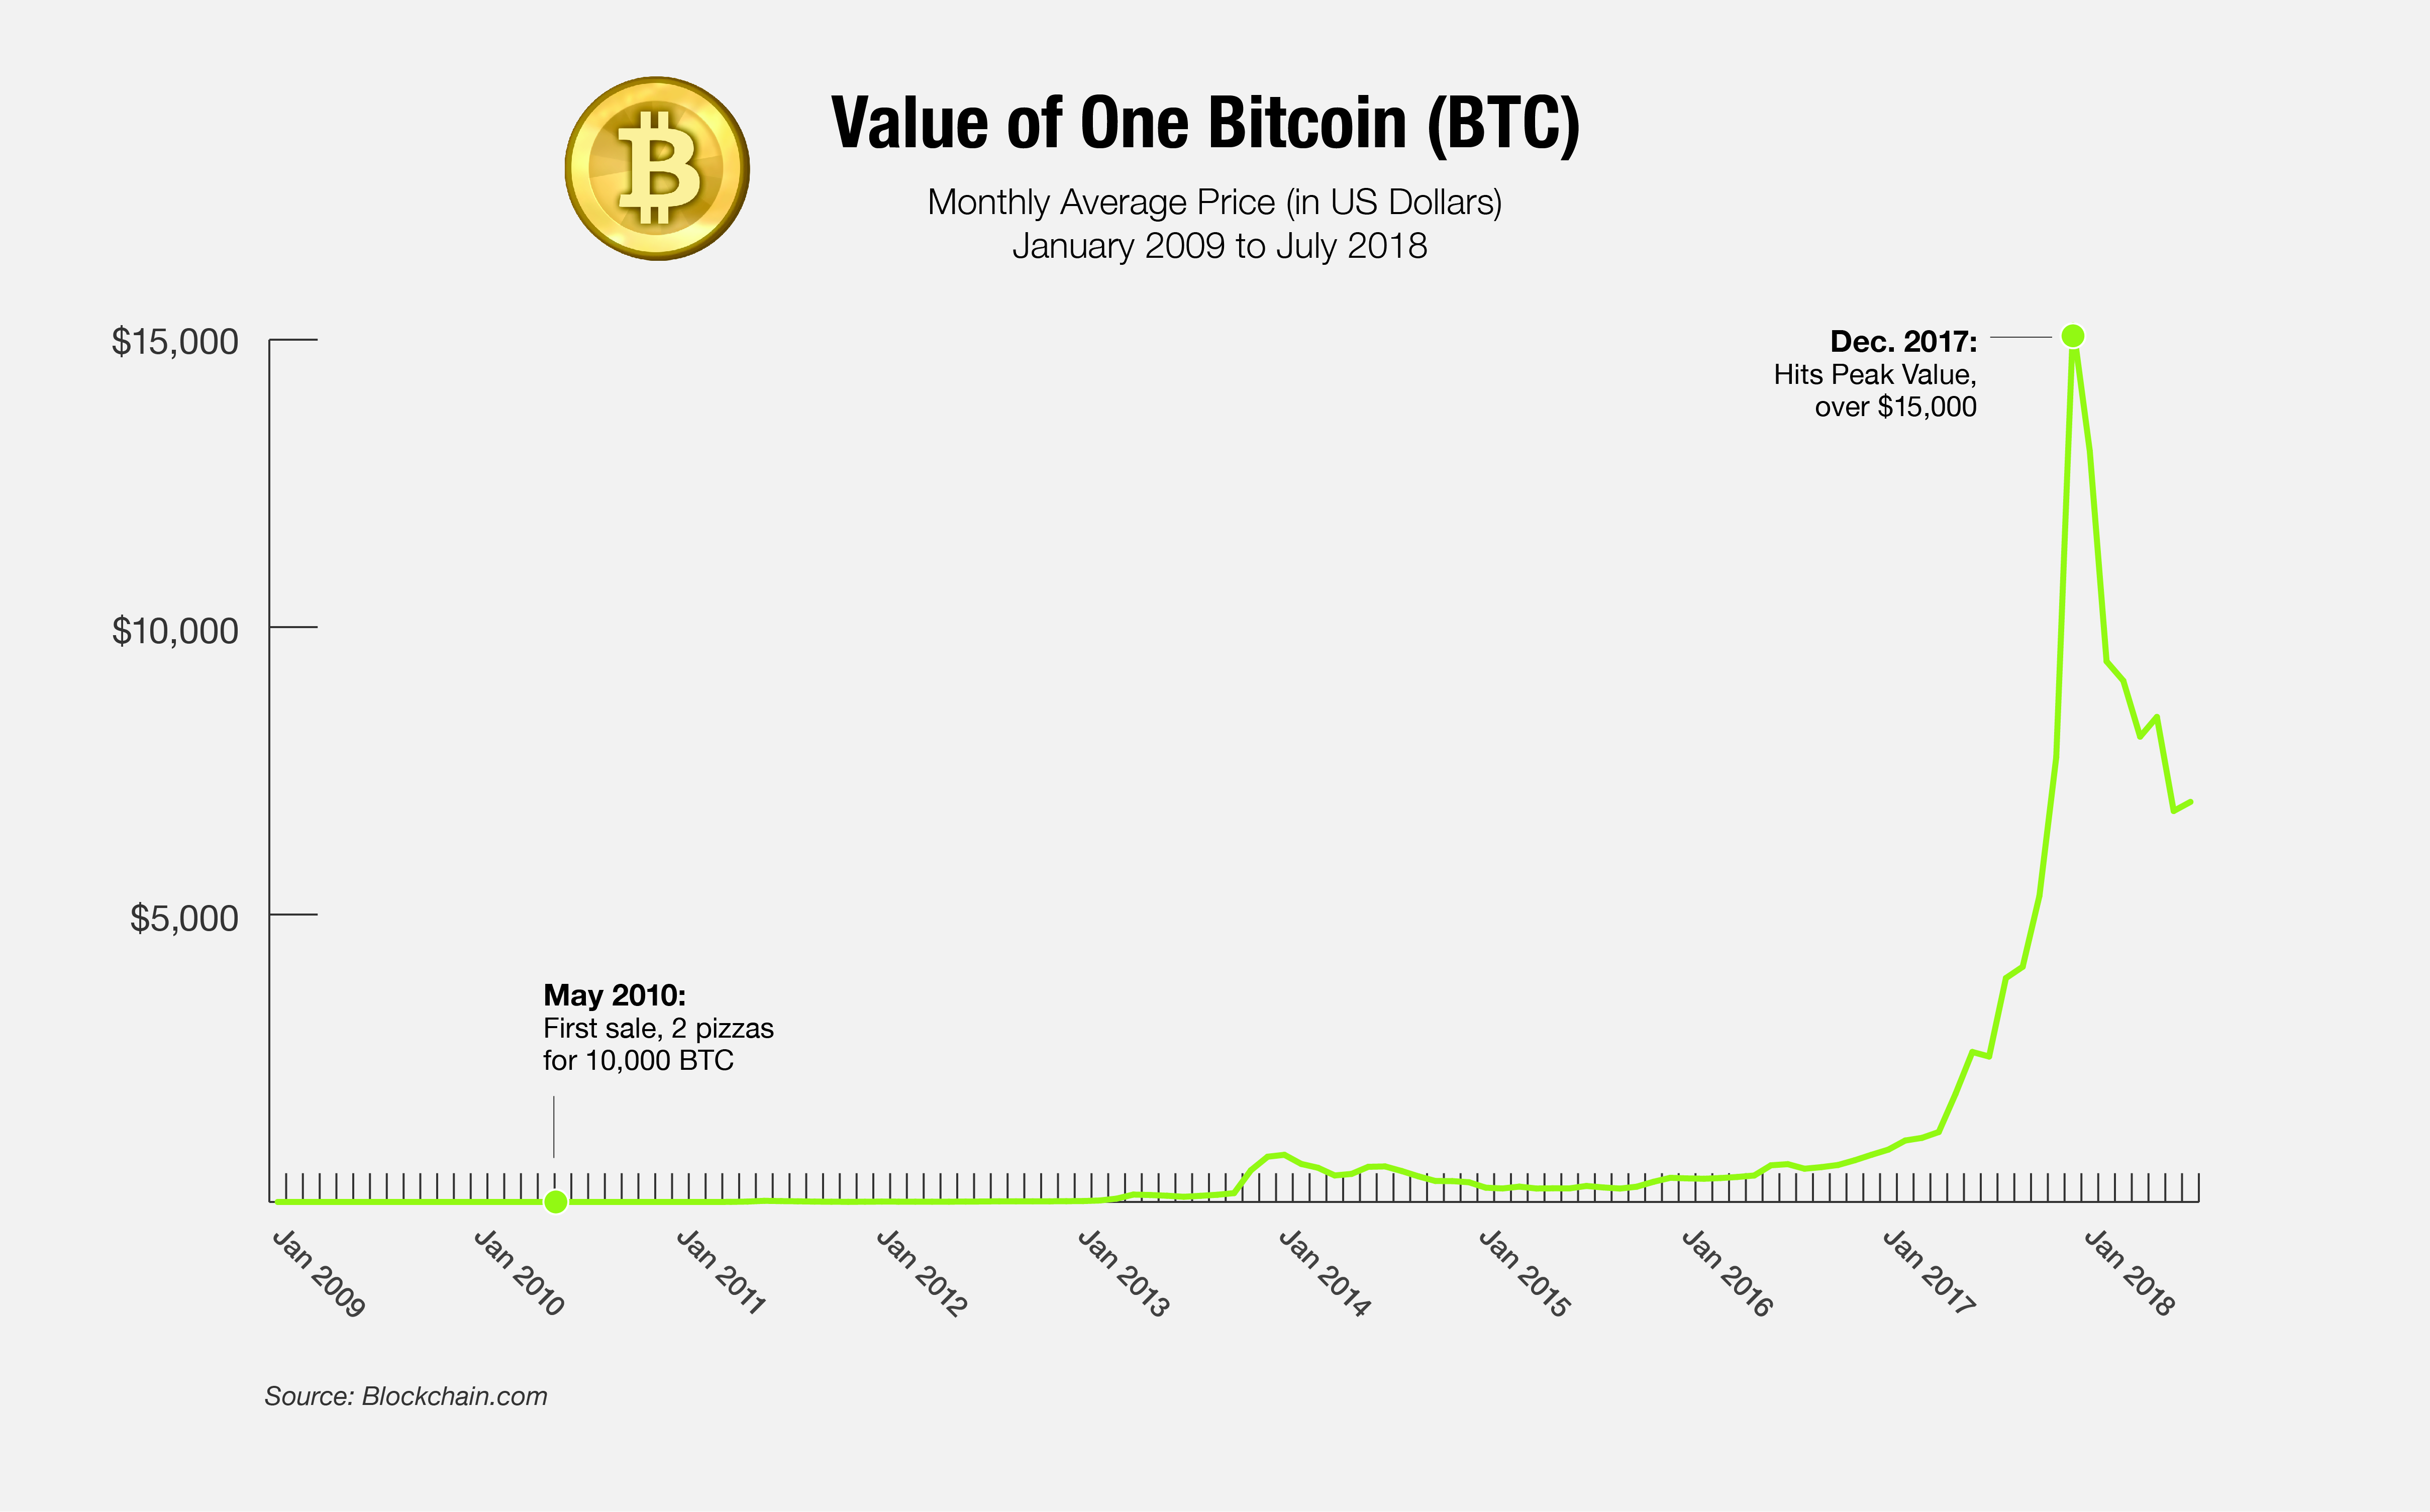 Value of One Bitcoin